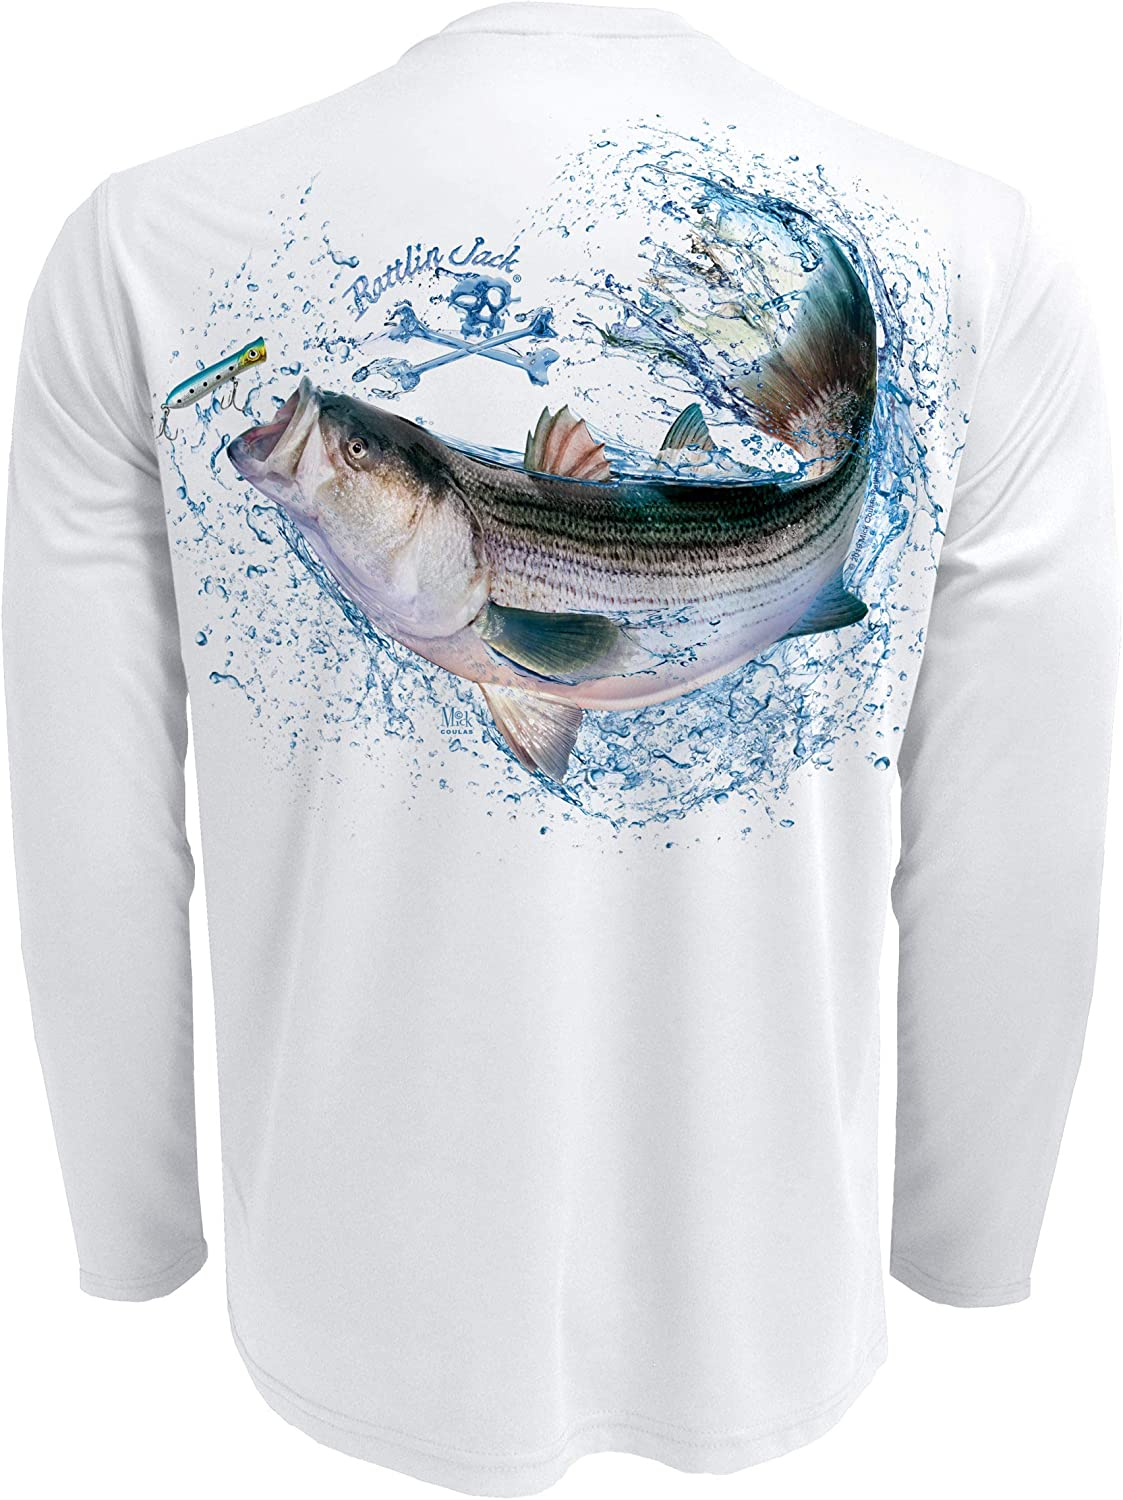 Rattlin Jack Men's Direct sale of manufacturer UPF SEAL limited product 50 Long Bass Striped Fishing Shirt Sleeve